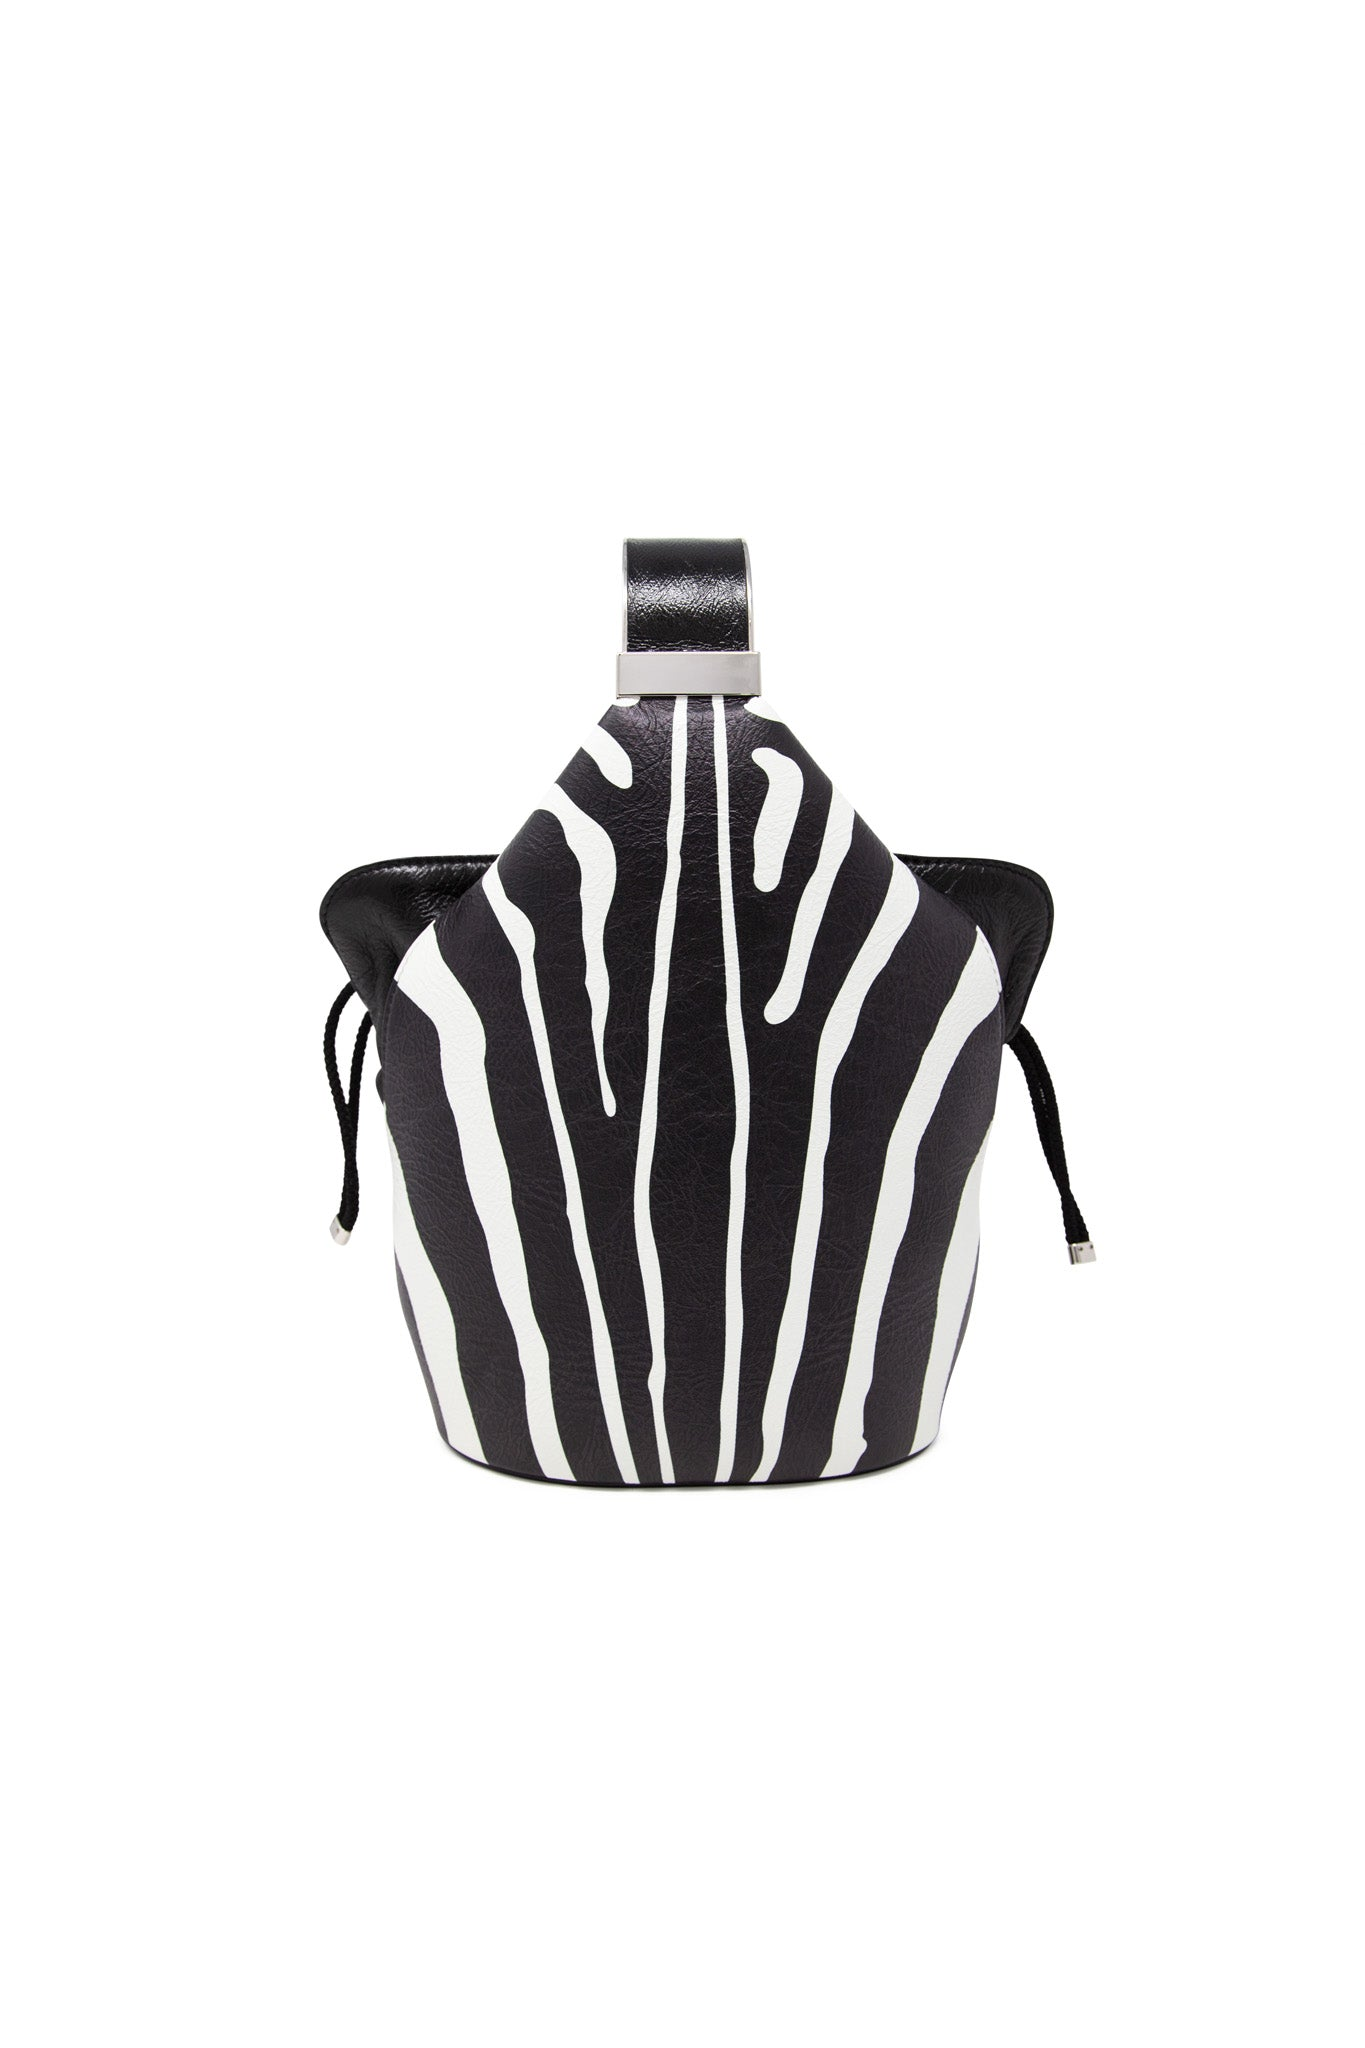 Kit Bracelet Bag in Zebra Printed Leather